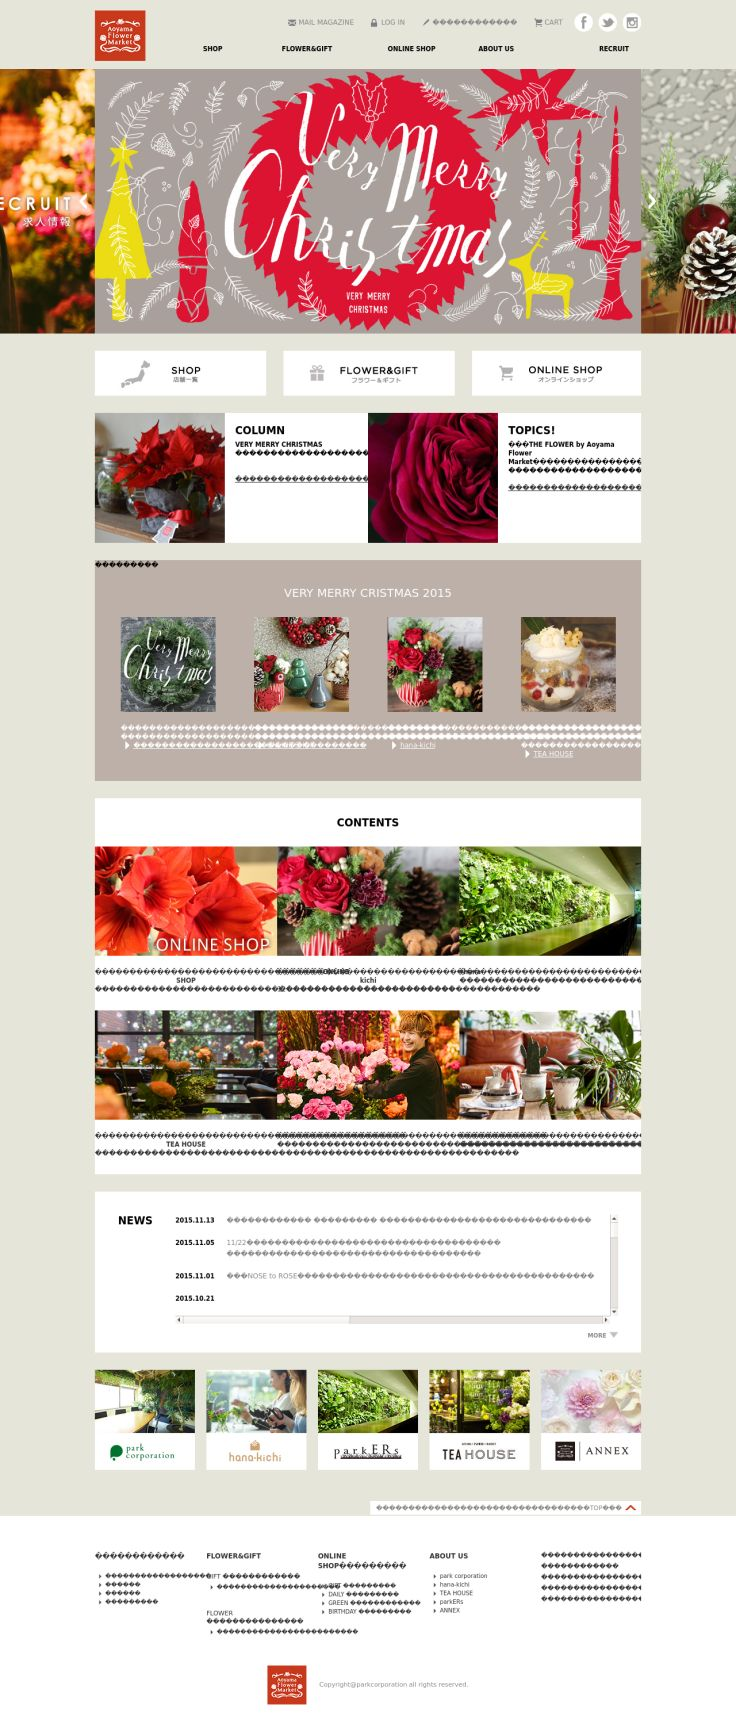 Website'http%3A%2F%2Fwww.aoyamaflowermarket.com%2Fpc%2Findex.php5' snapped on Page2images!